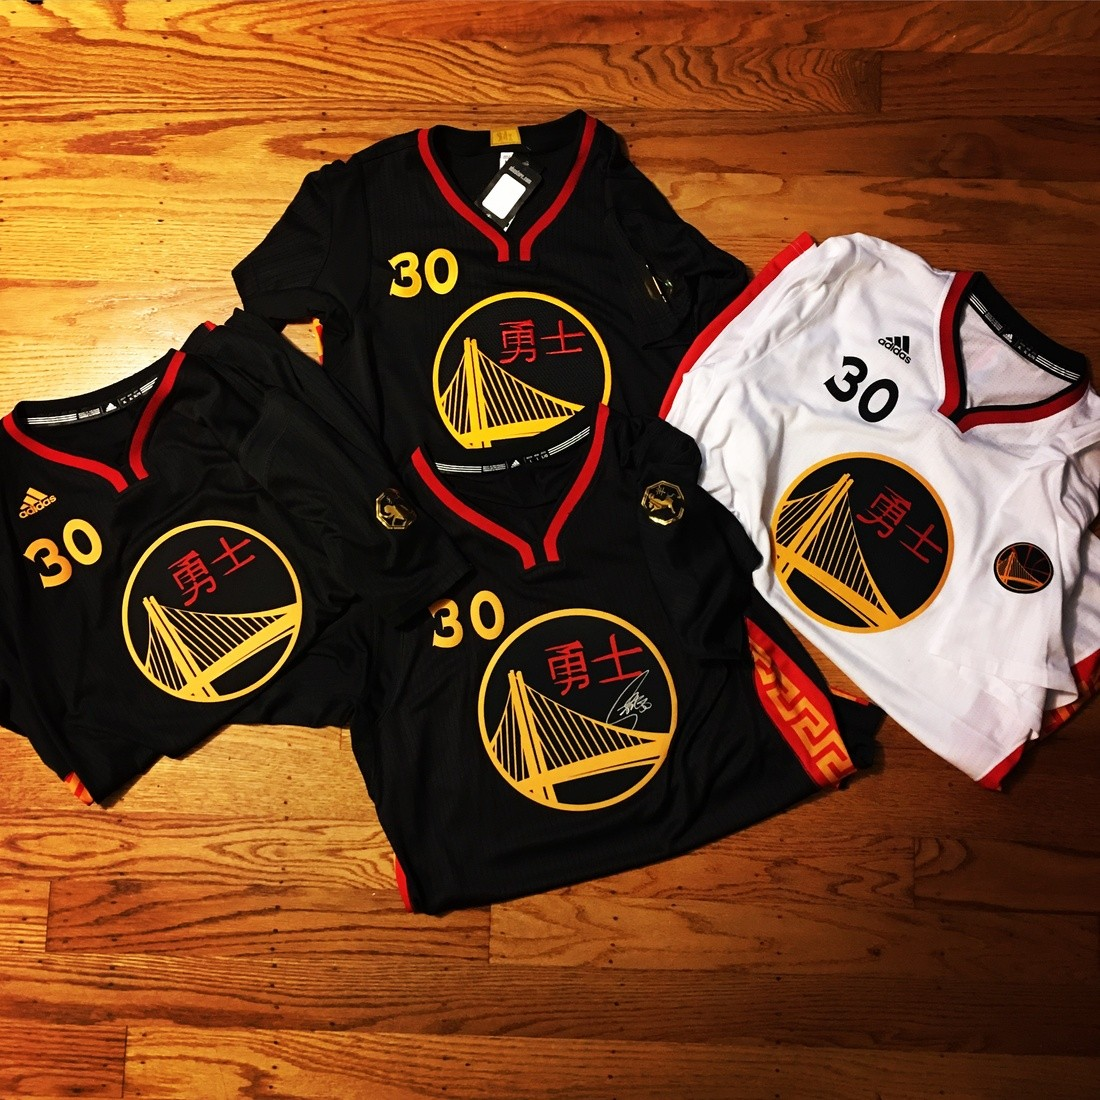 best service 182b1 75c5e Stephen Curry Authentic Chinese New Year Jerseys   Collectionzz